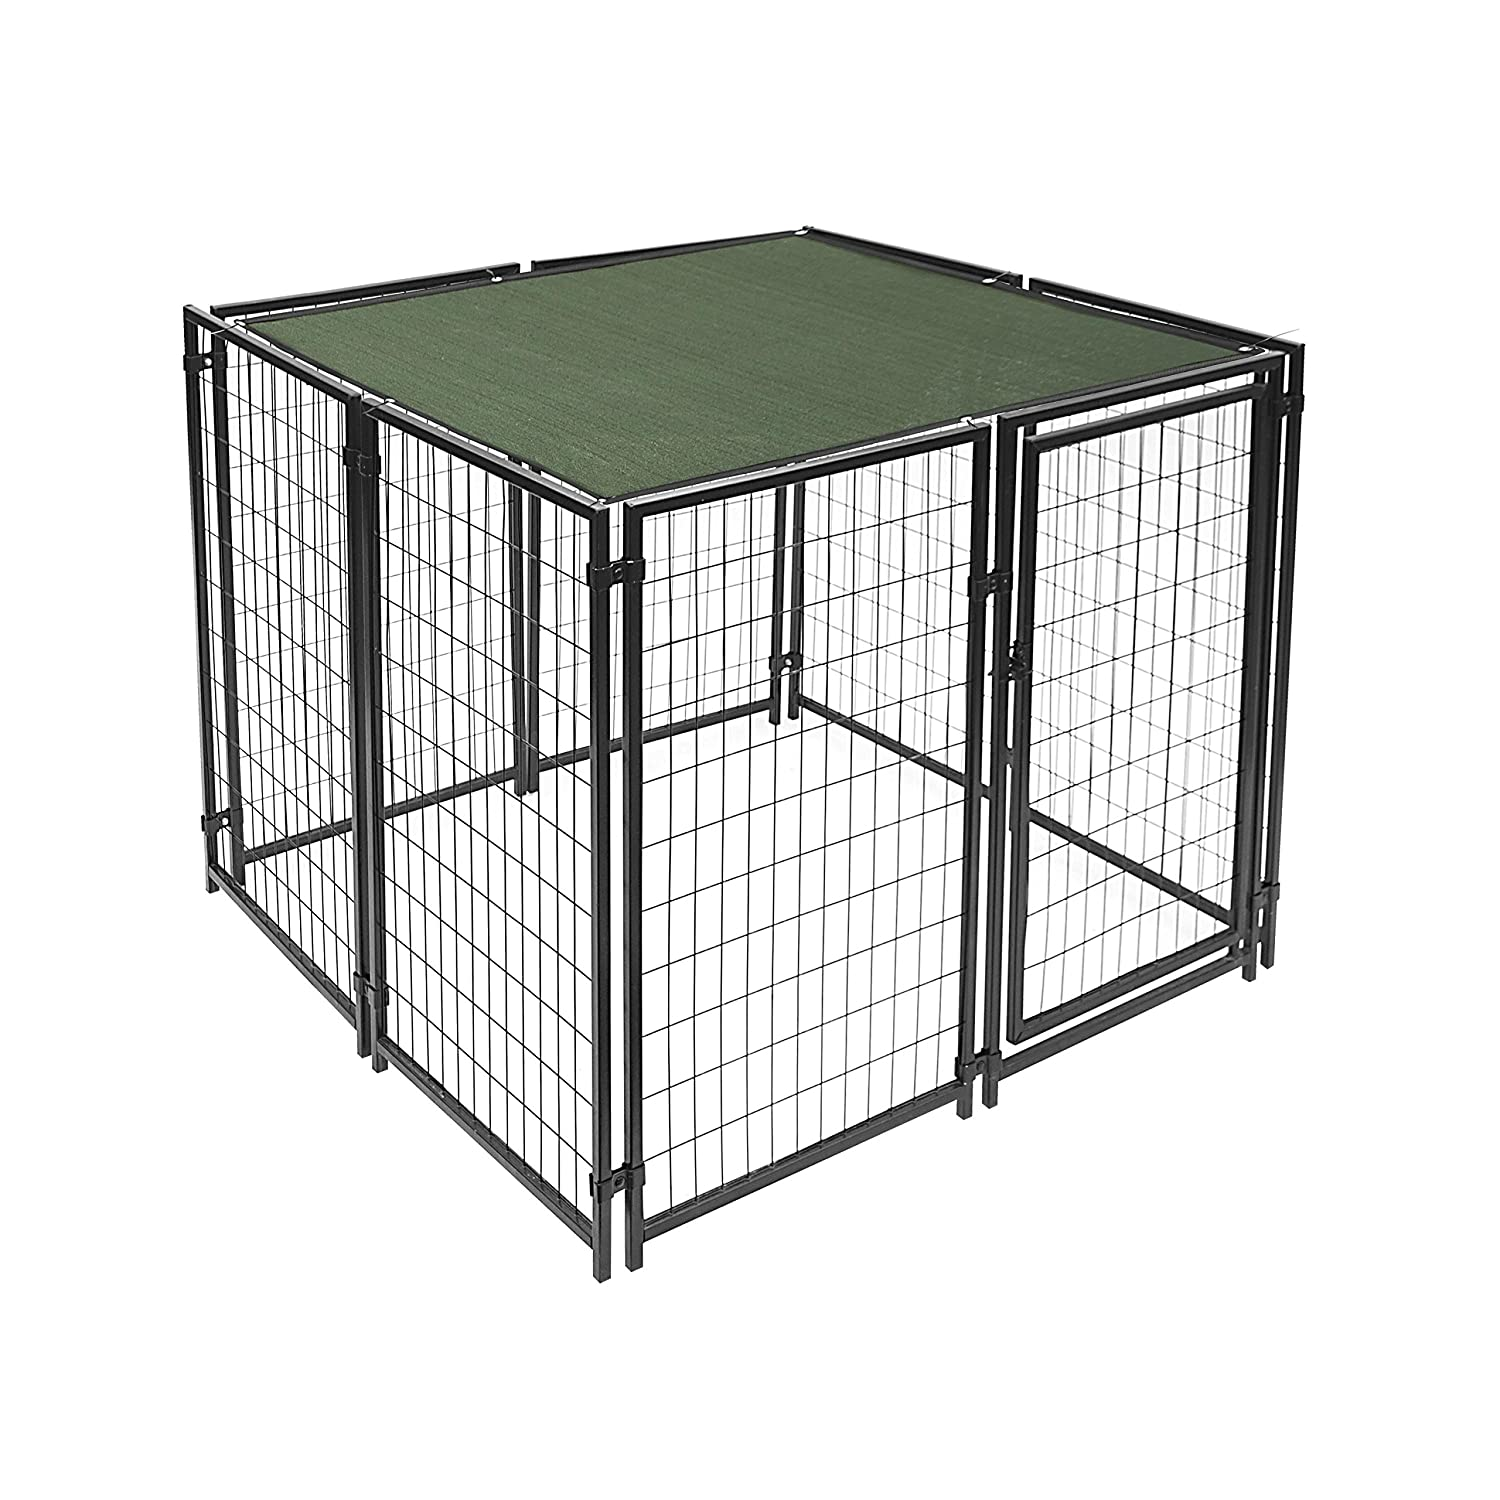 ALEKO® DKSC5X5X4SQ Heavy Duty Dog Kennel 5X5X4 Foot Pet Playpen With Dark Green Shade Cover With Aluminum Grommets